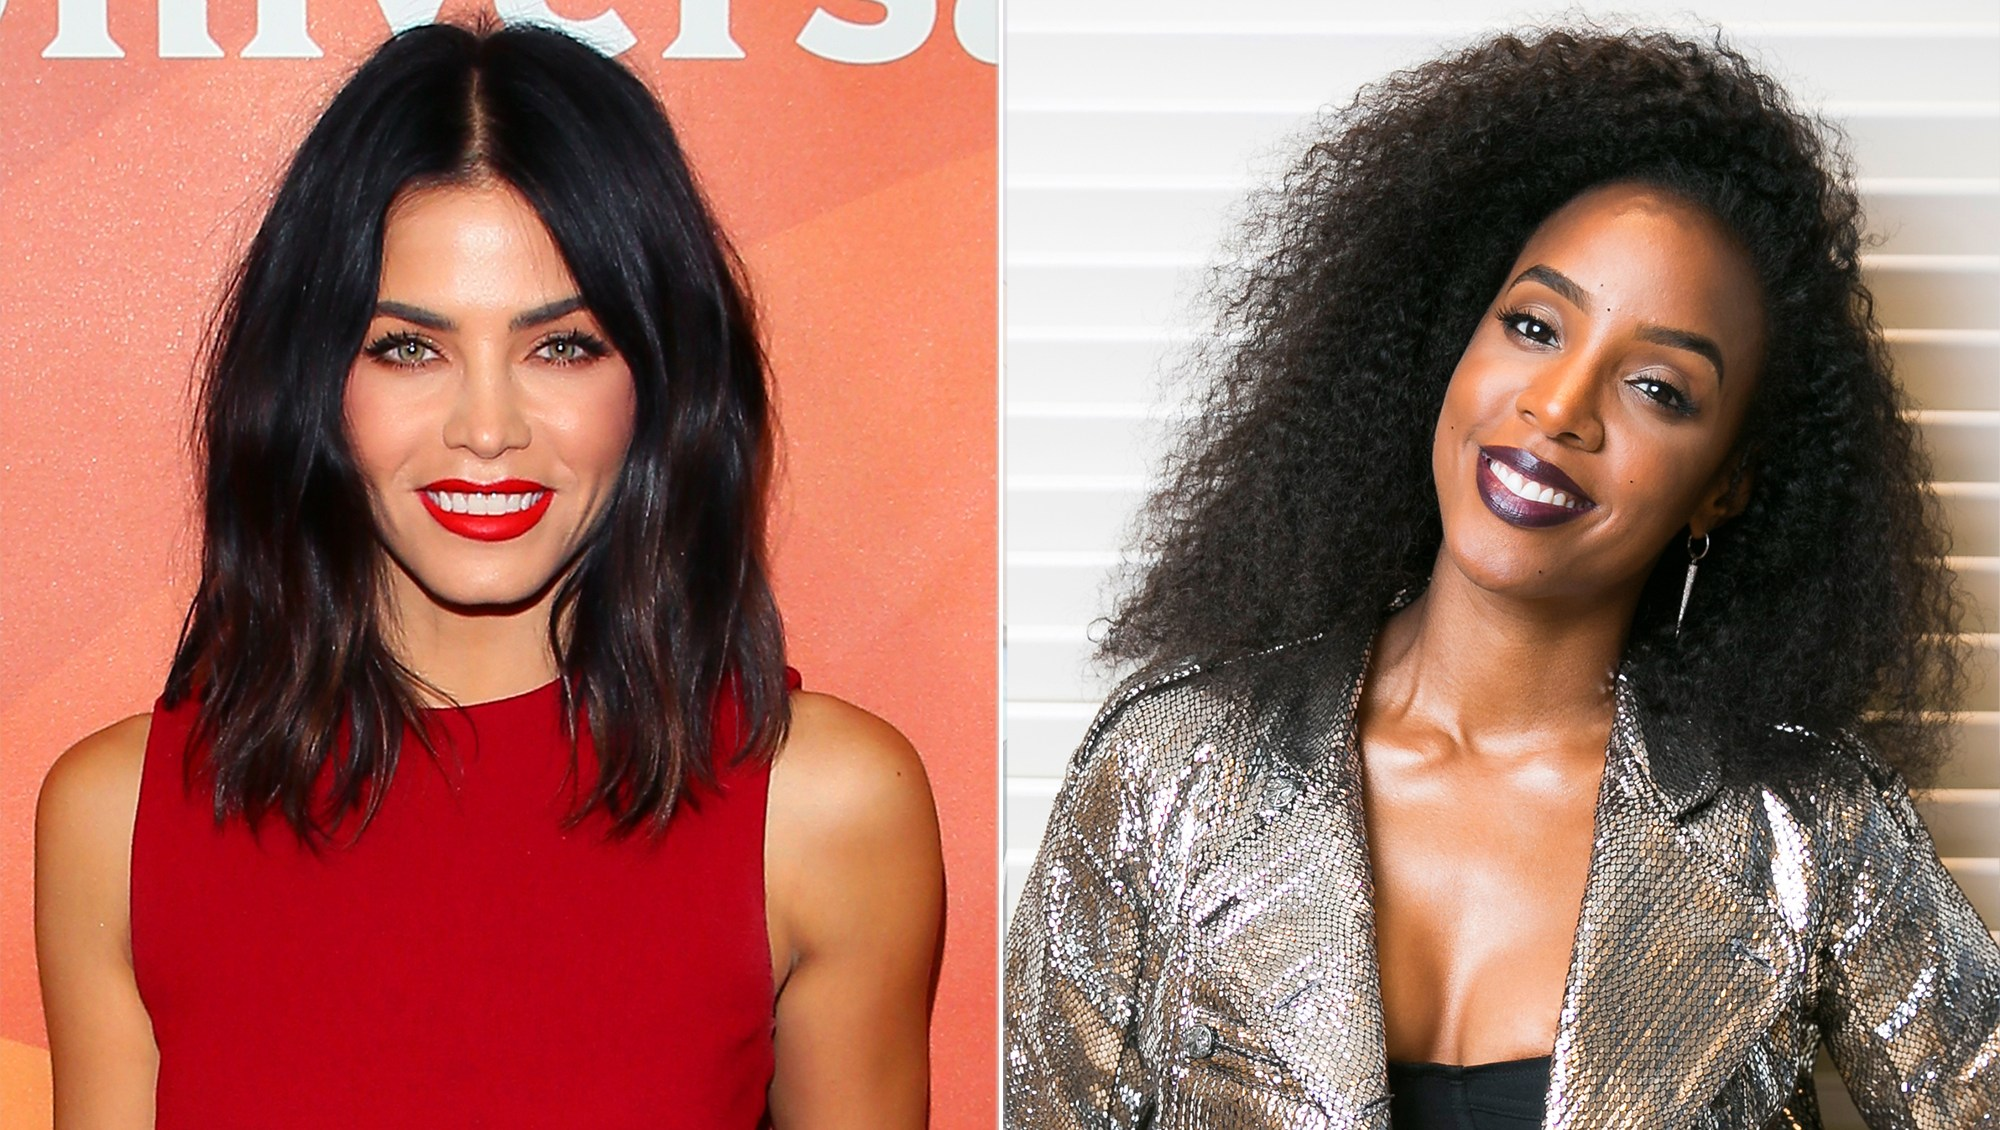 Healthy Stars Like Jenna Dewan and Heidi Klum Tell Us What They Eat Every Morning to Fuel Up